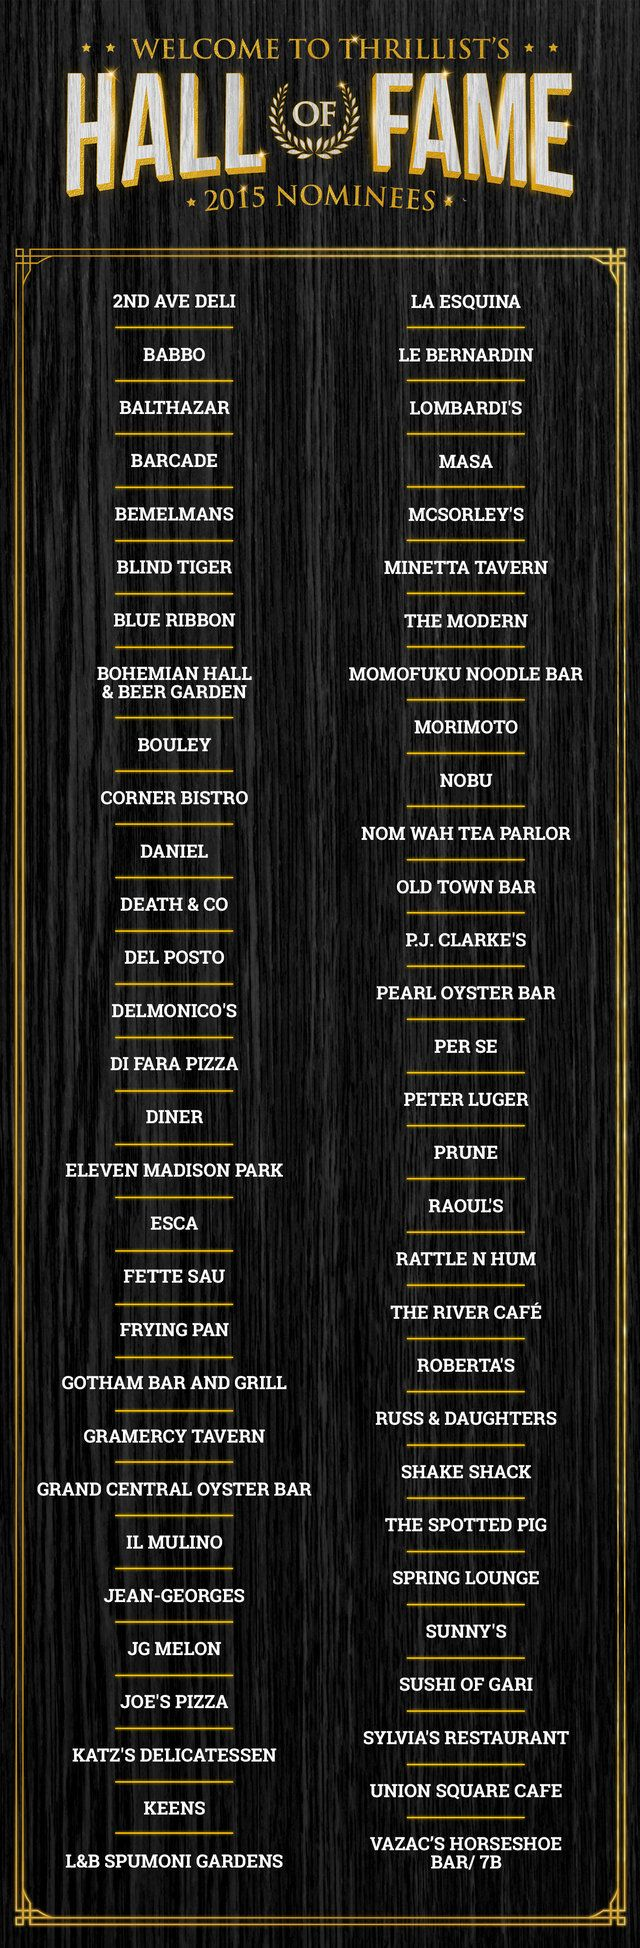 Thrillist Food and Drink Hall of Fame - NYC 2015 Nominees